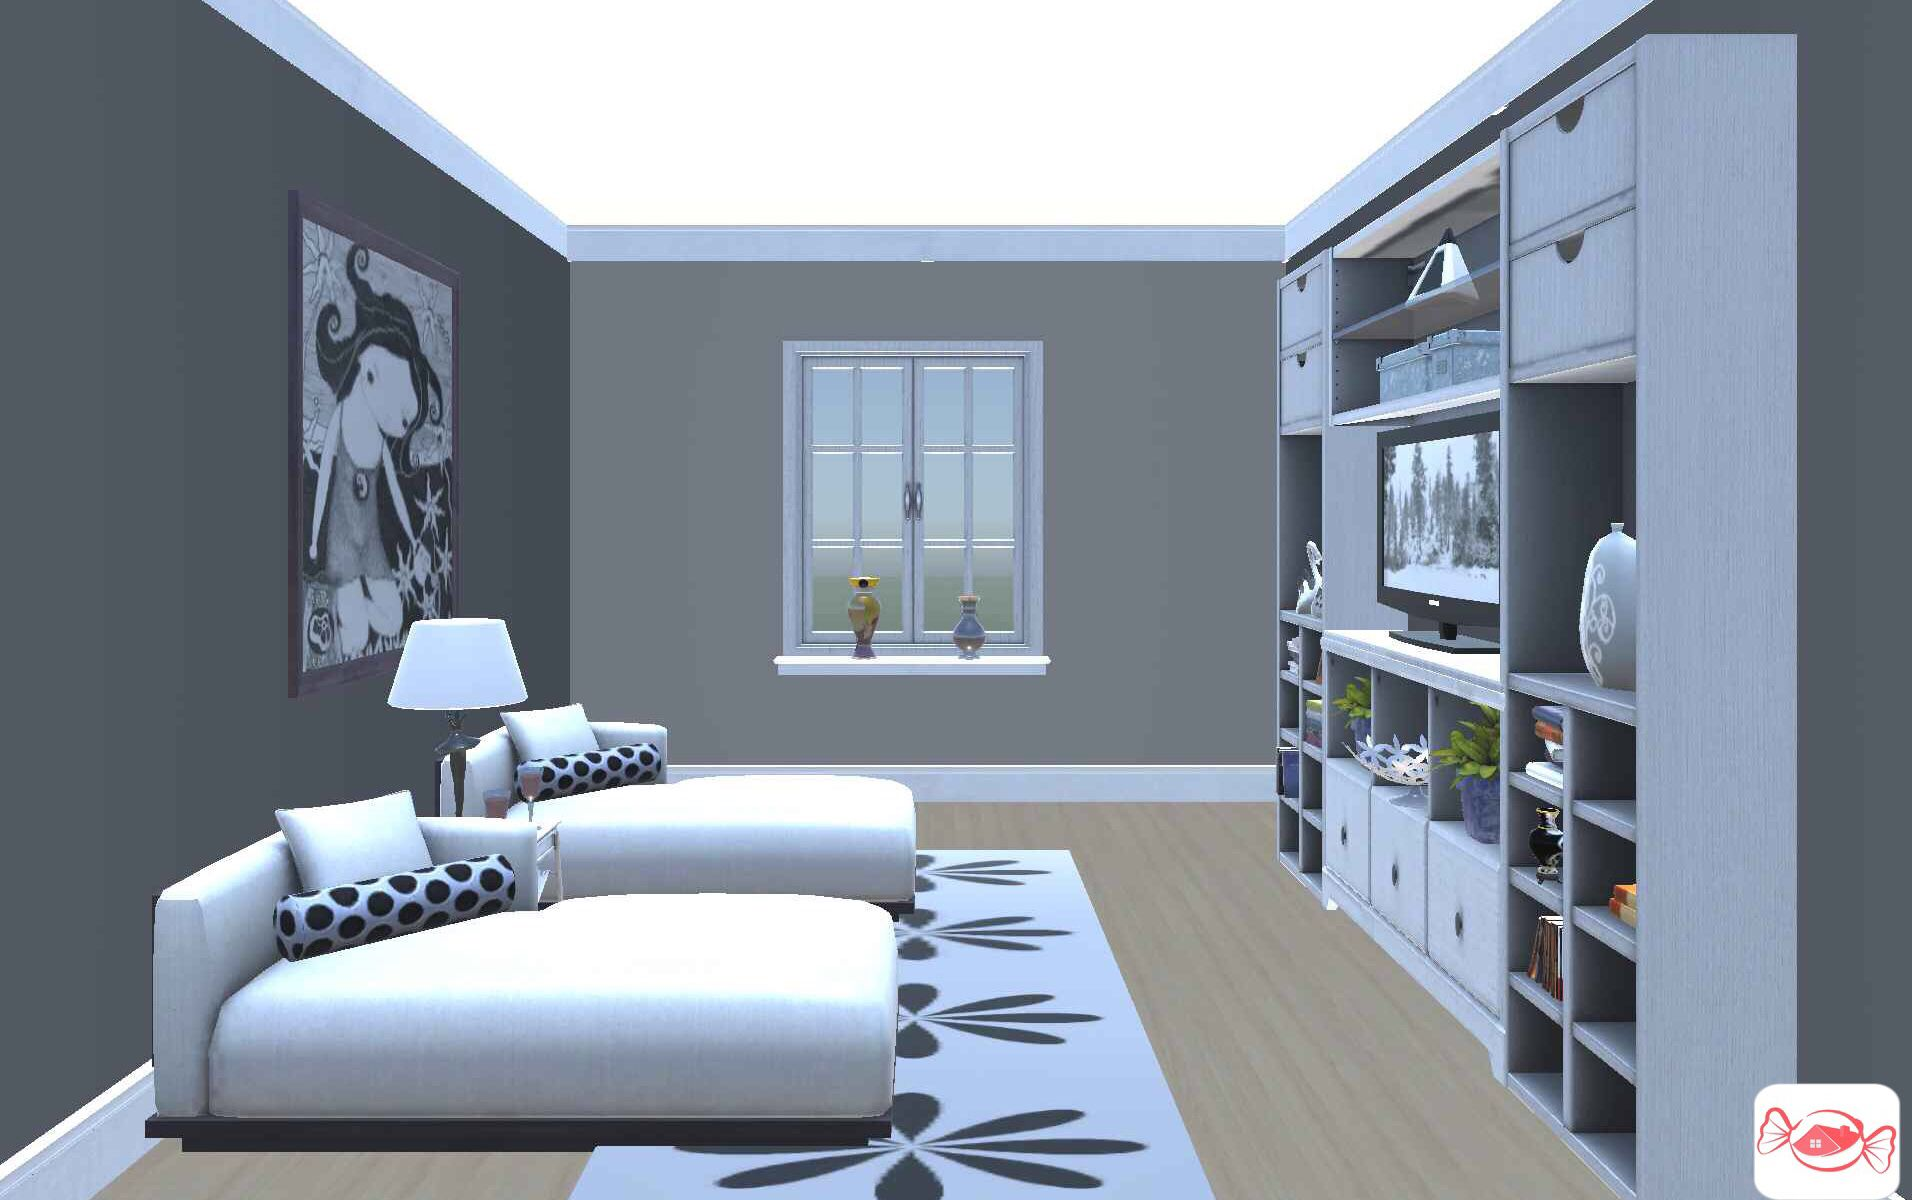 Pin By Design Crasher On Living Room Ideas Design Your Own Home 3d Home Design Home